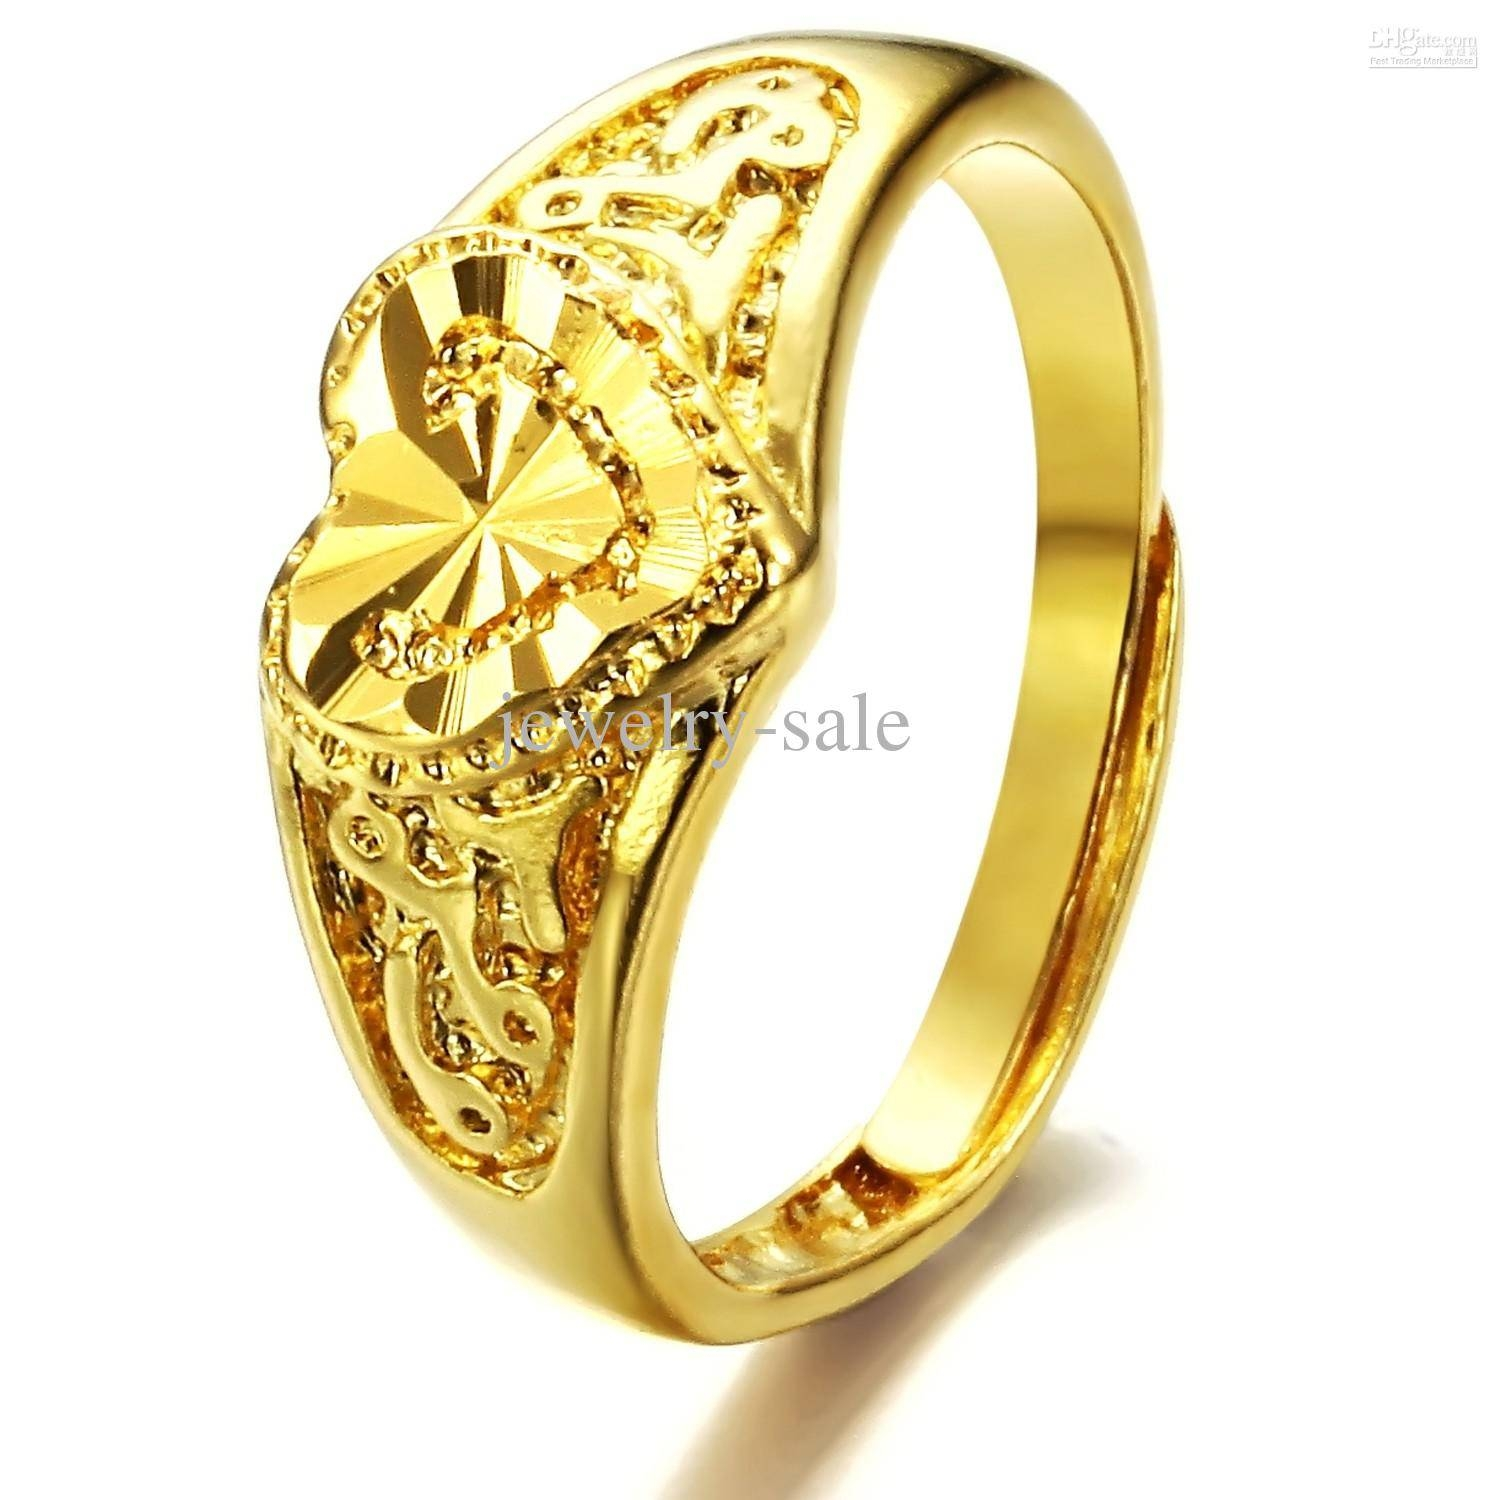 2017 Hot Sale Plating 18K Yellow Gold Rings Adjustable Wedding With Gold Wedding Rings For Women (Gallery 3 of 15)